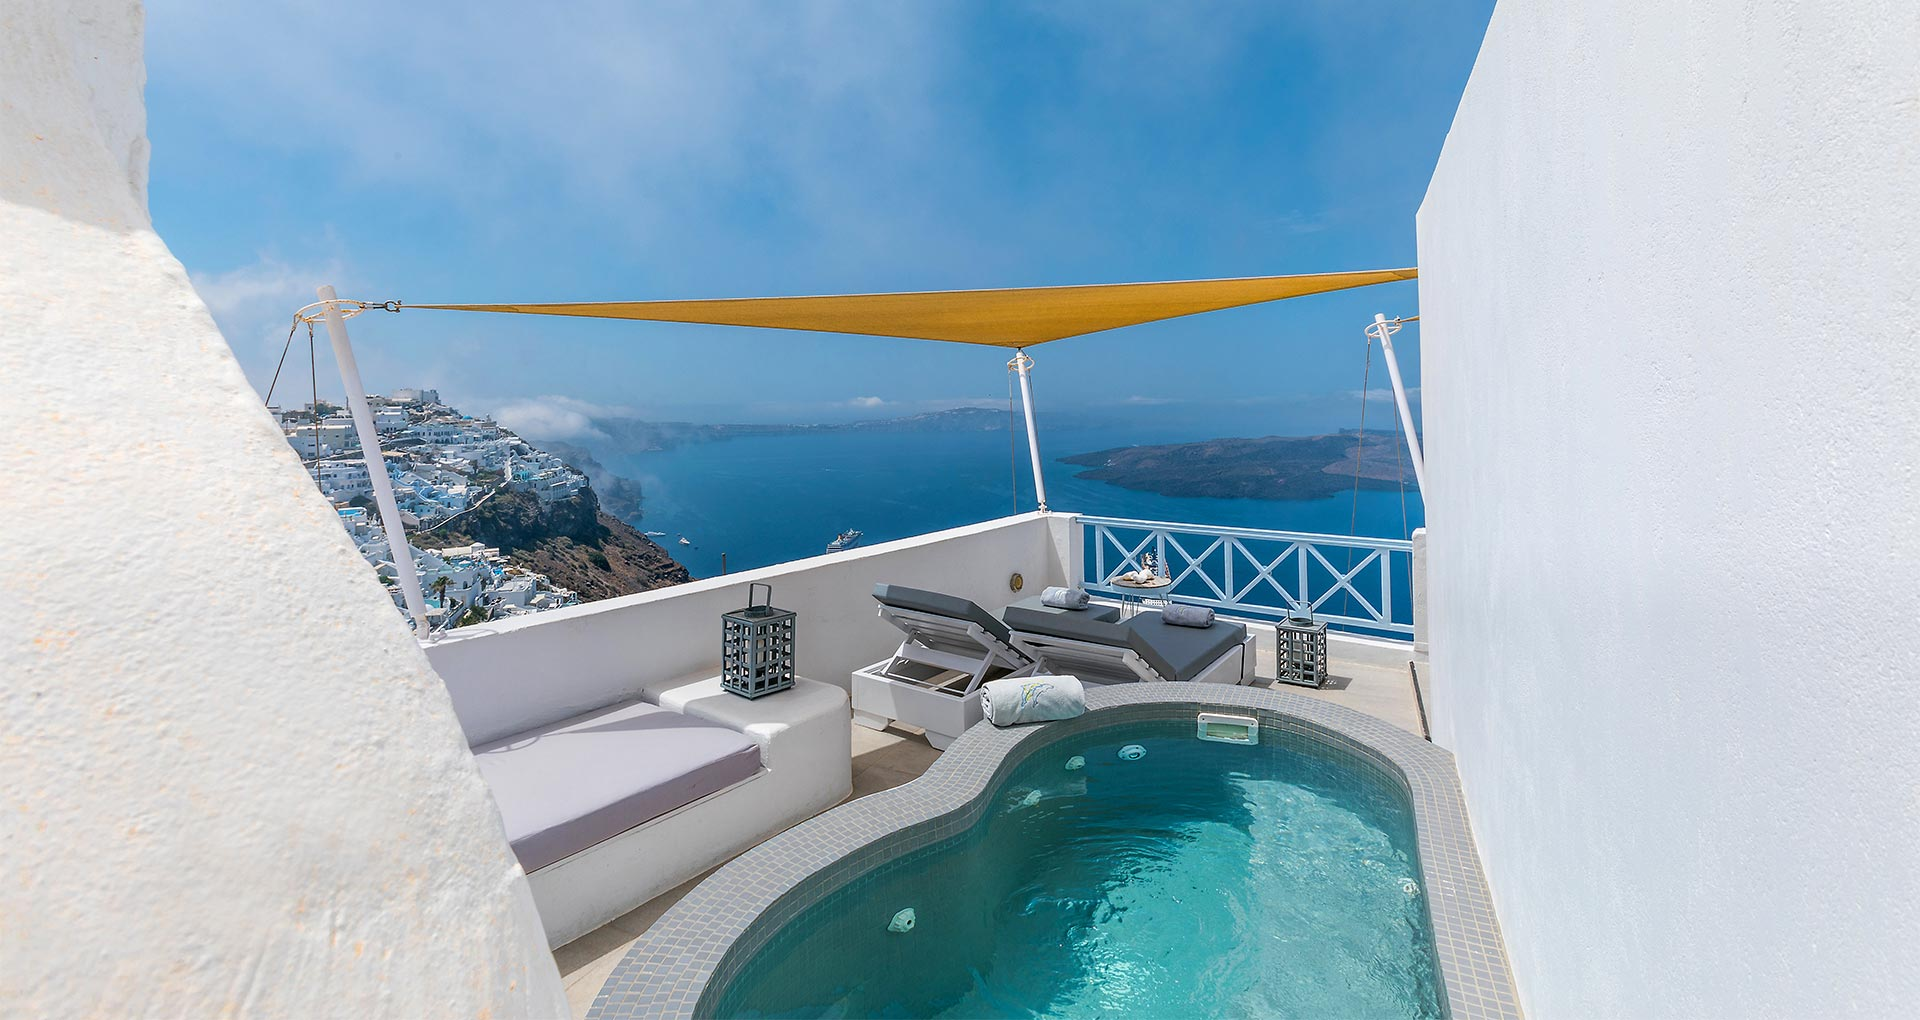 honeymoon jacuzzi suites private balcony santorini bluedolphins sl1